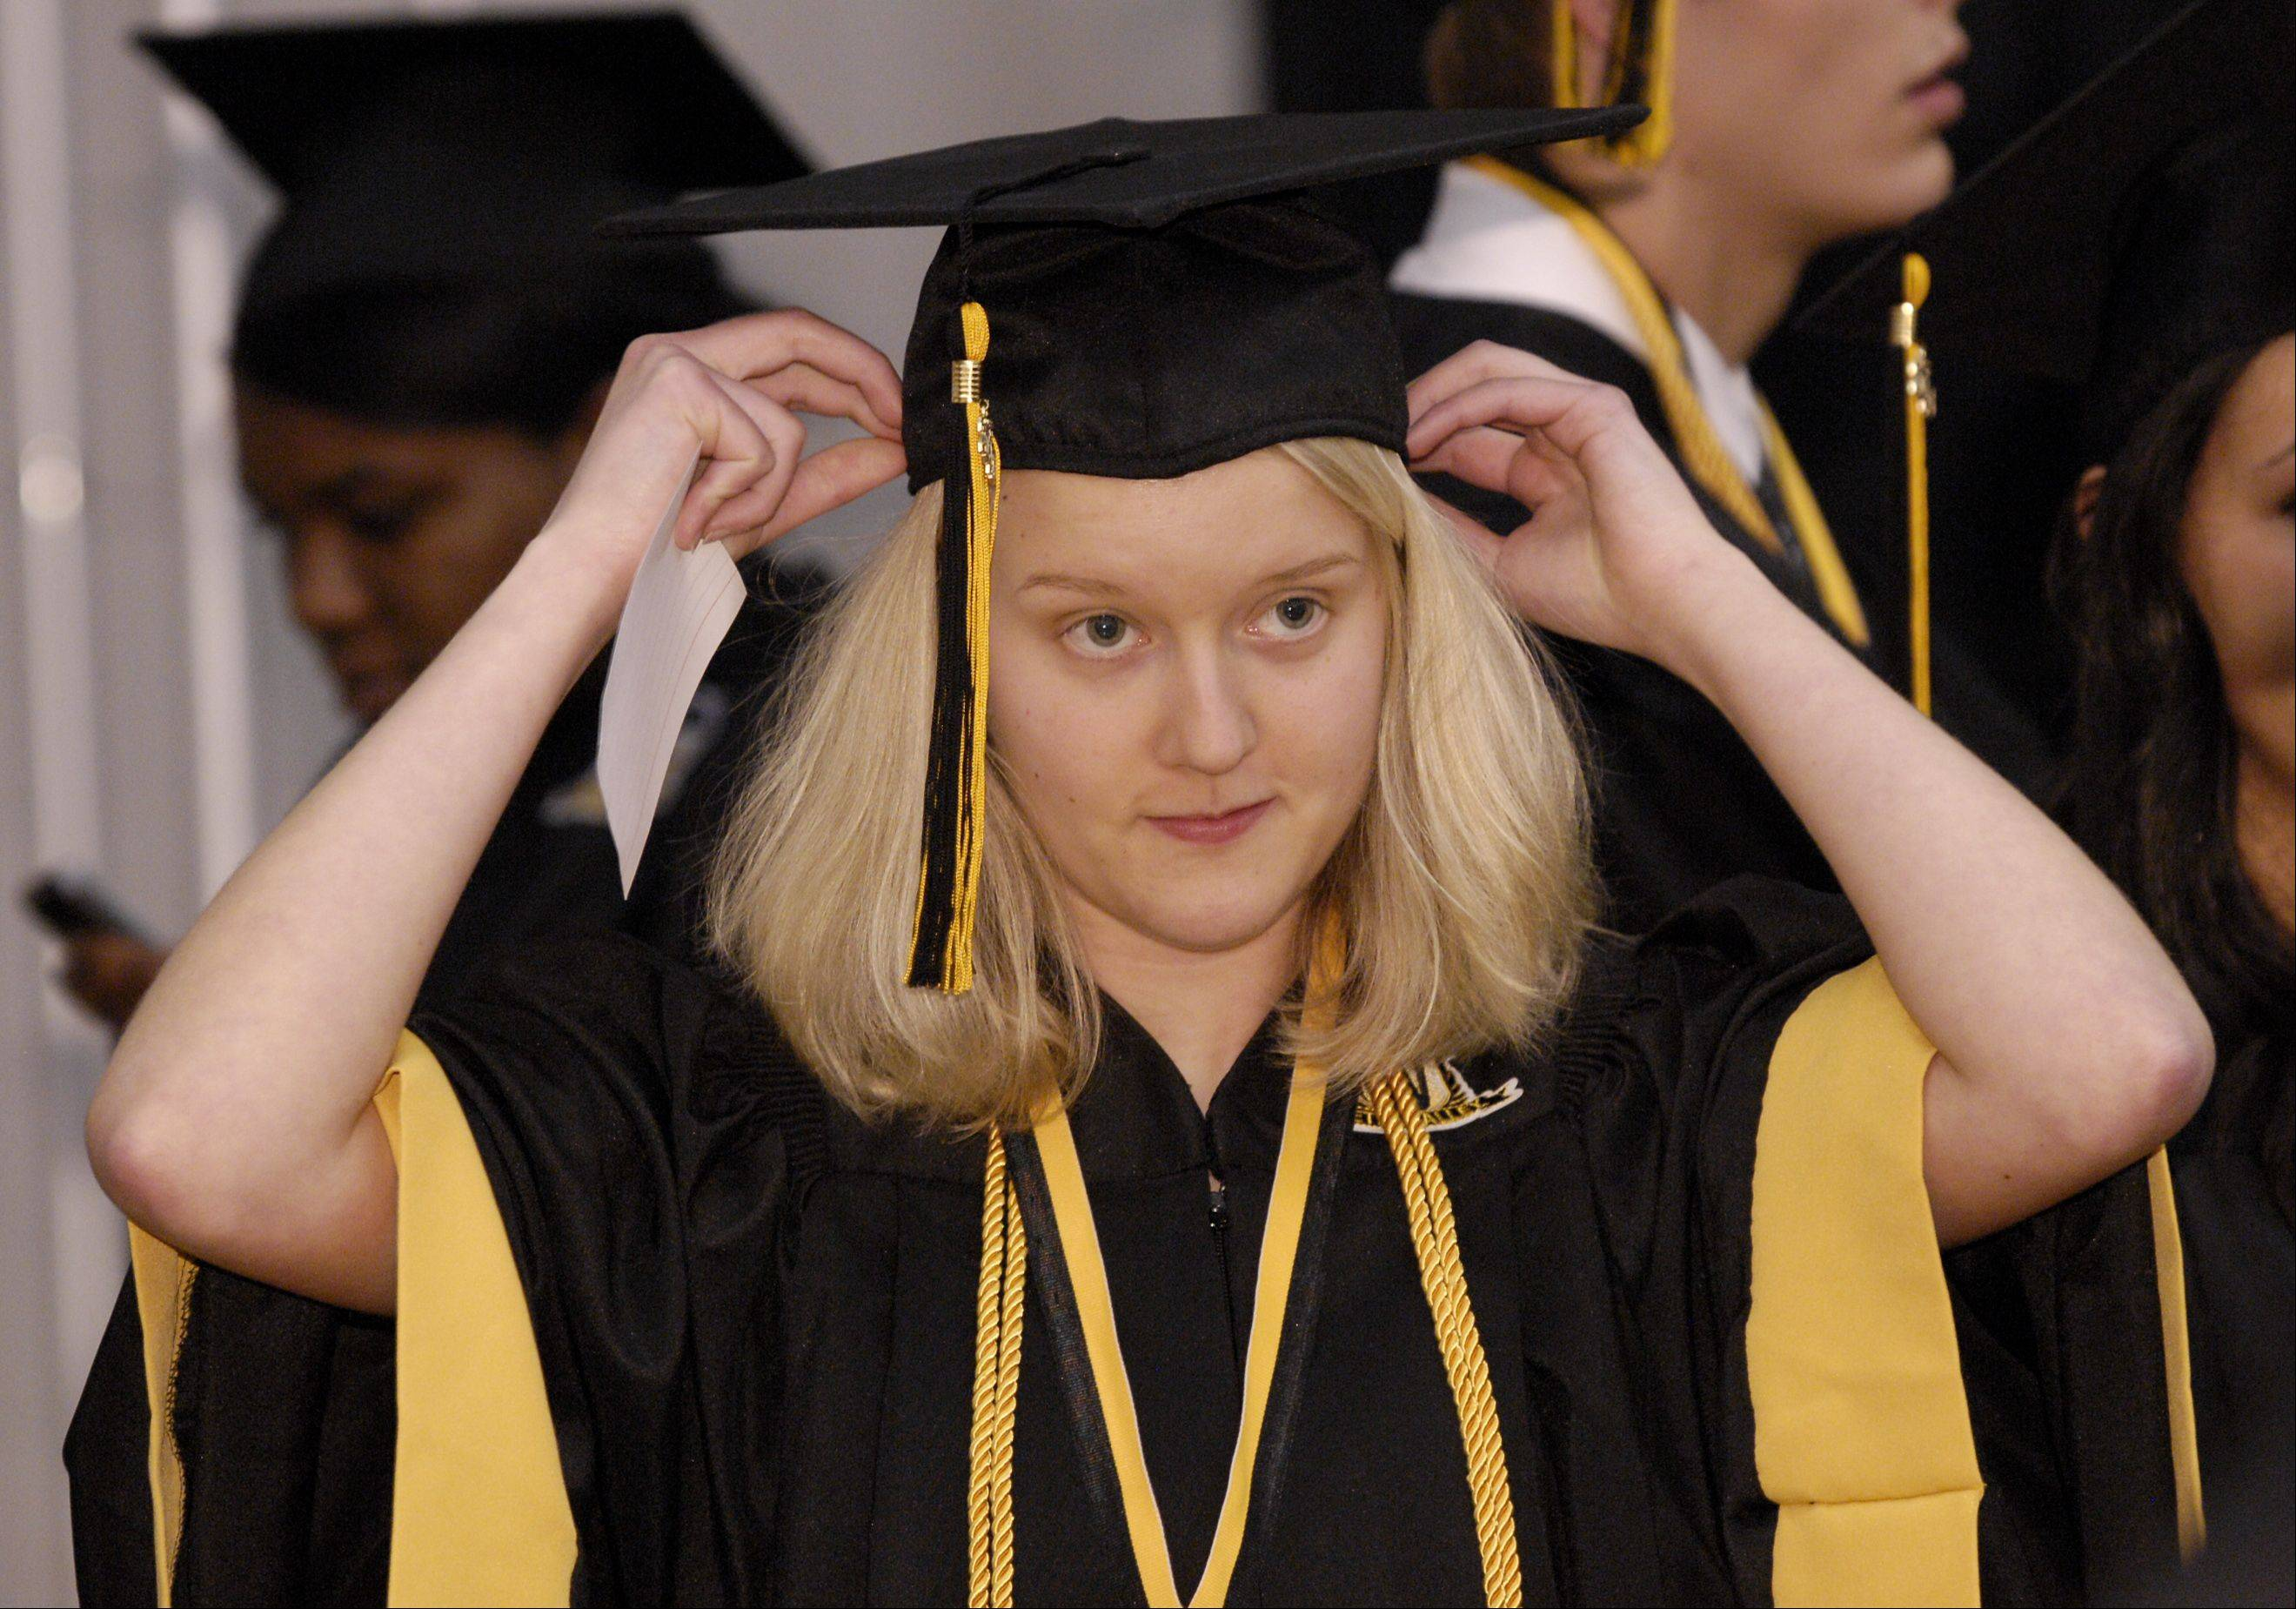 Kelly Koronkowski gets ready for the Metea Valley High School graduation on Sunday, May 26 at the NIU Convocation Center in DeKalb.